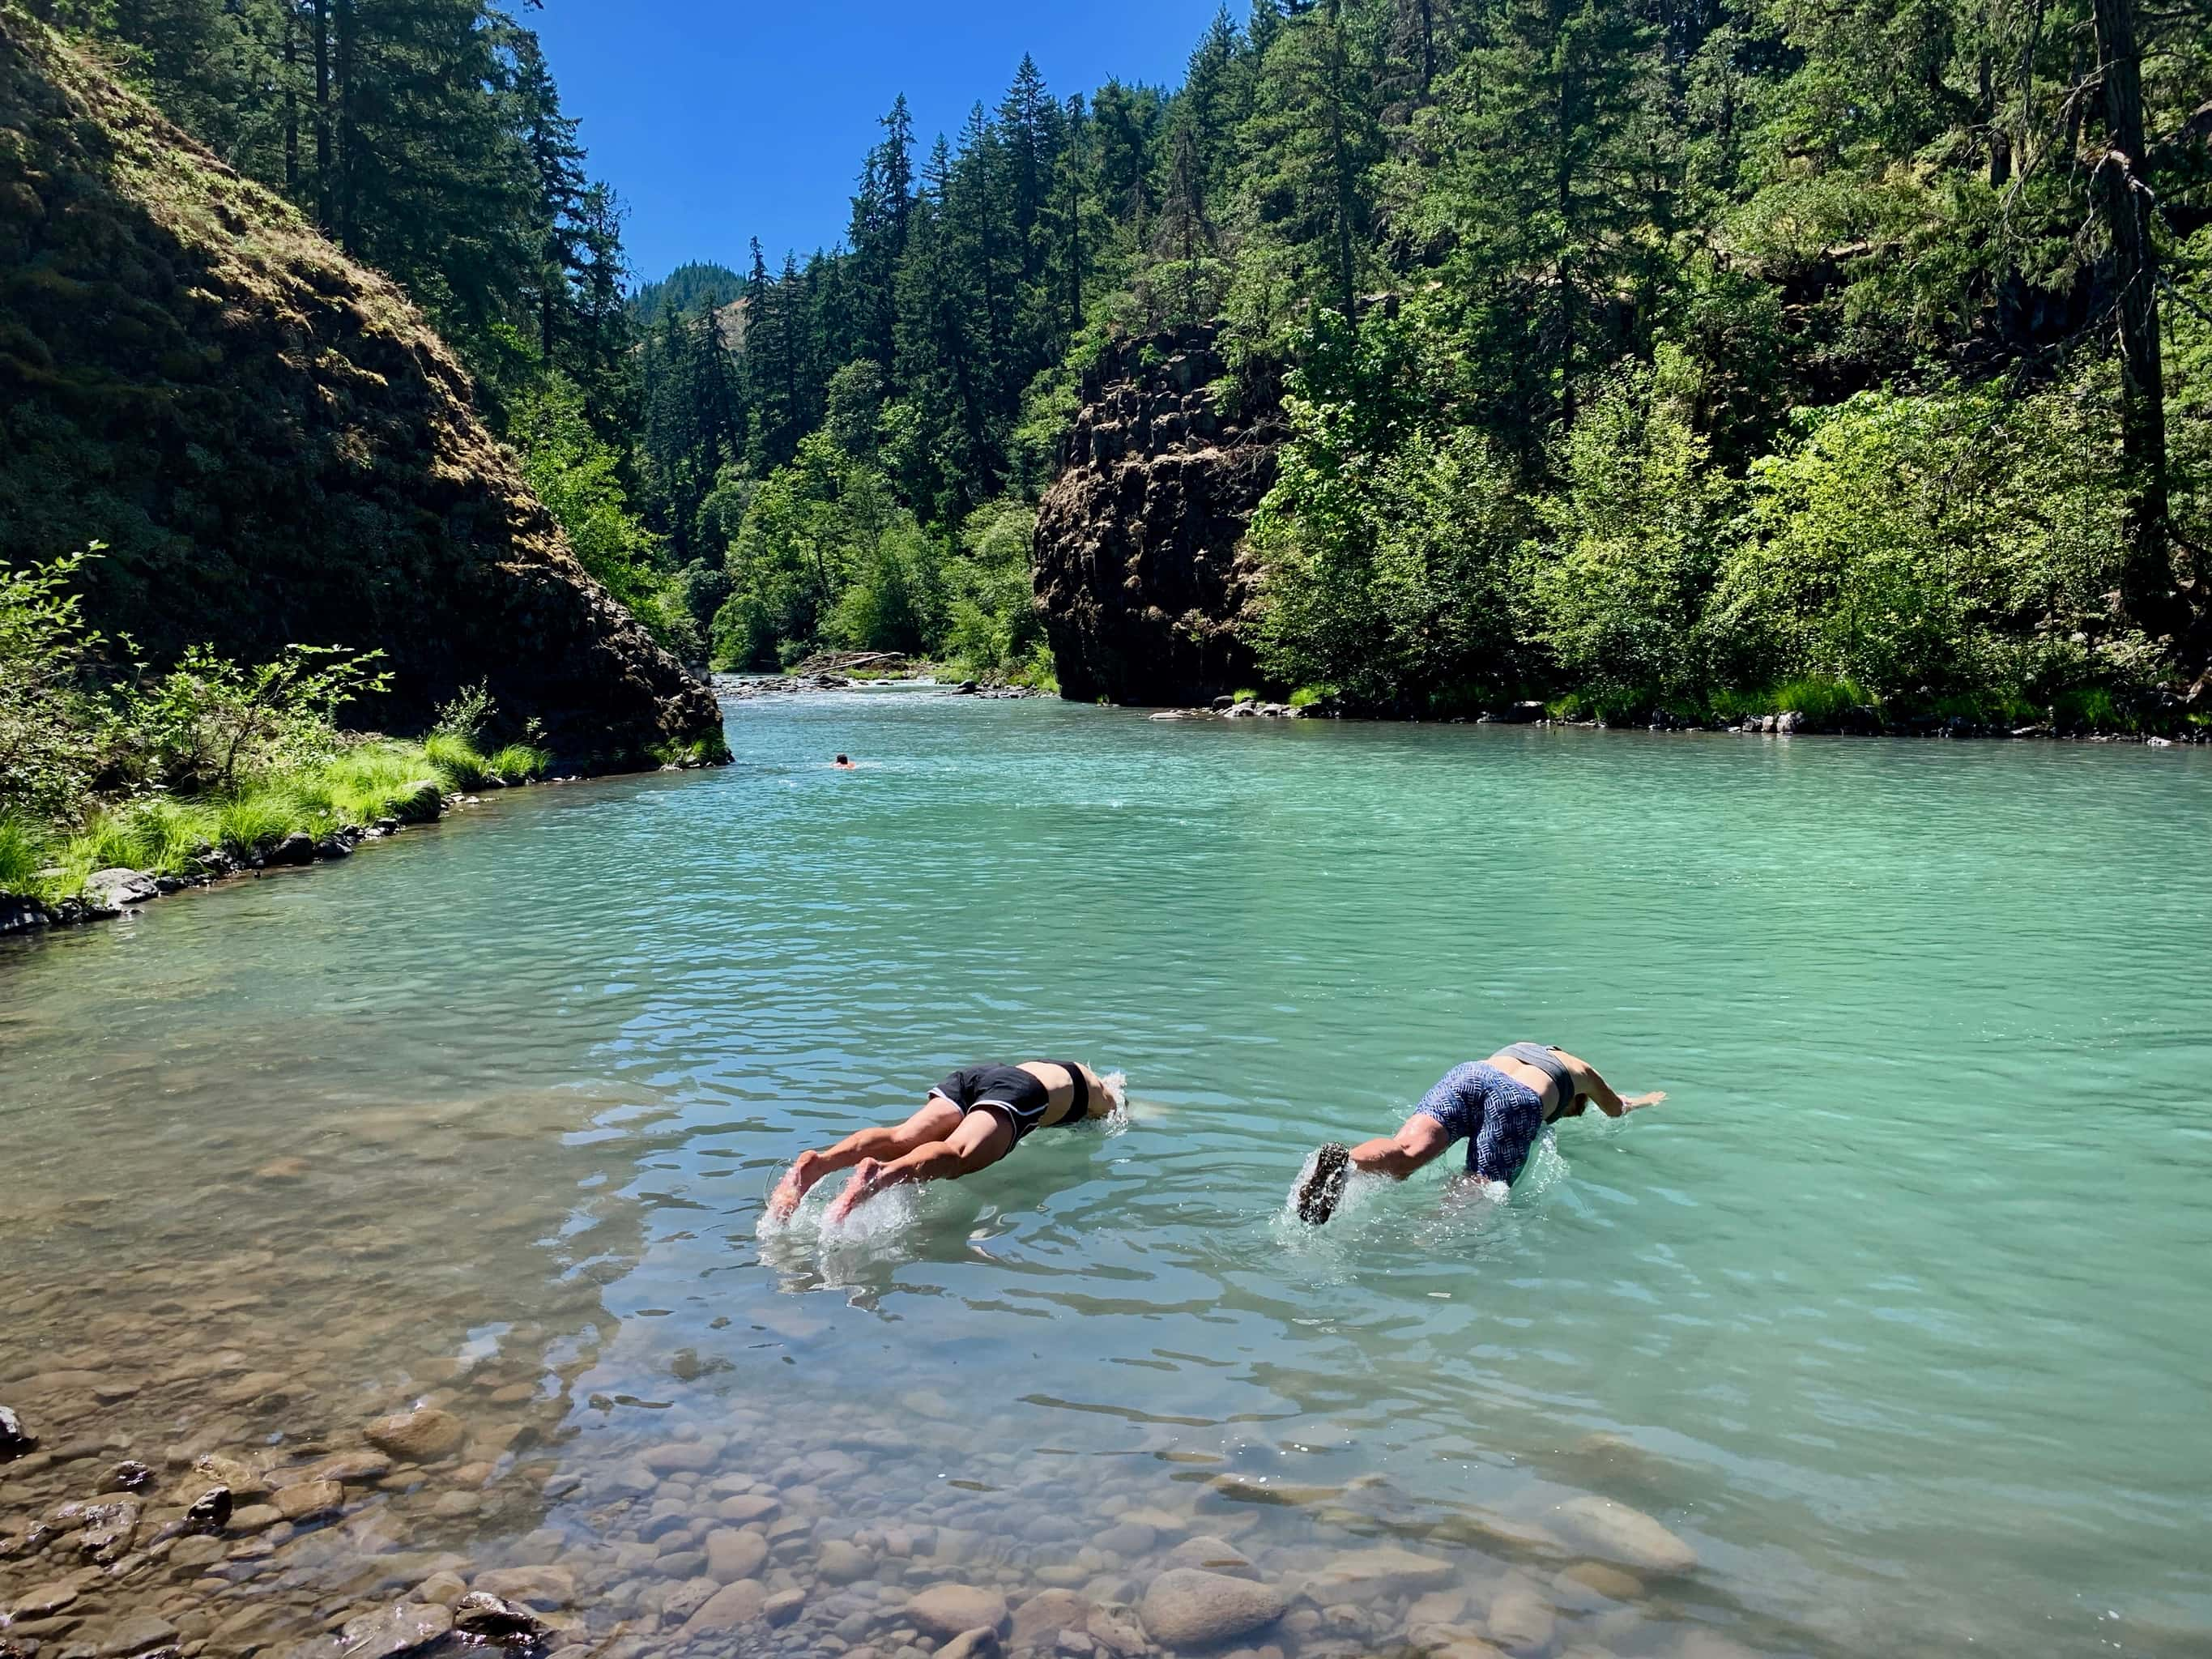 Swimming near Punchbowl falls in the Hood River area.